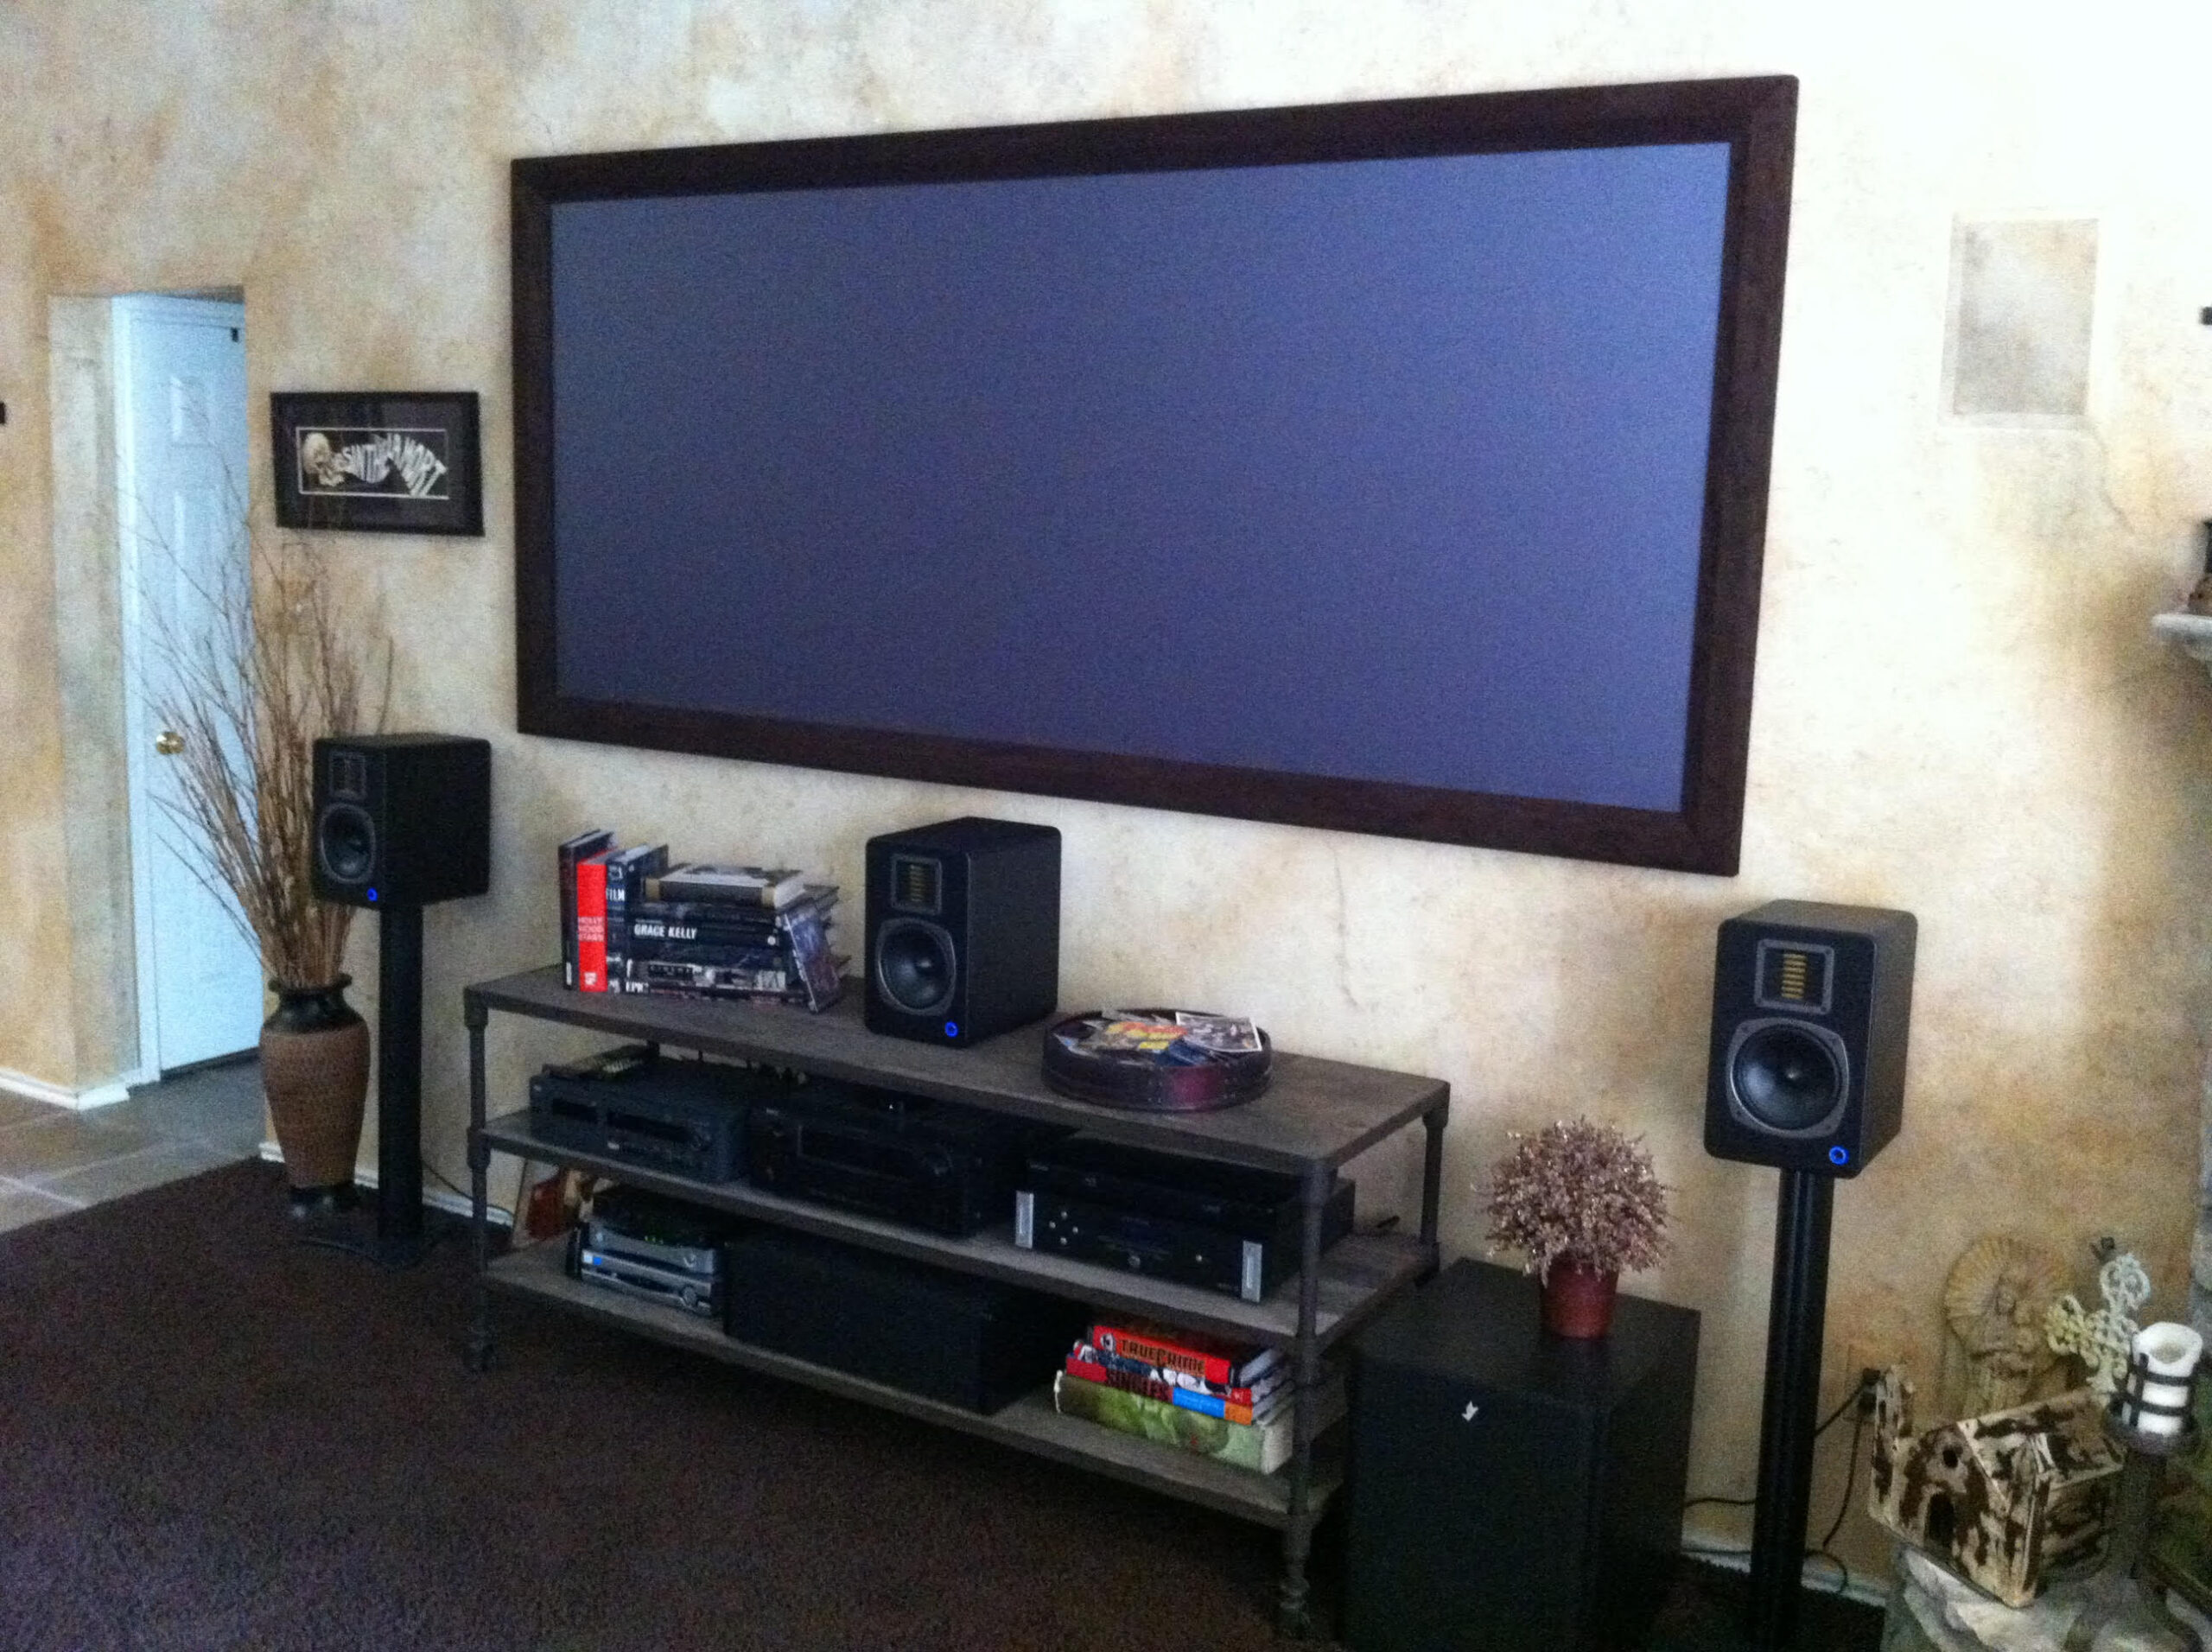 Short throw projection screen and loudspeakers audio system